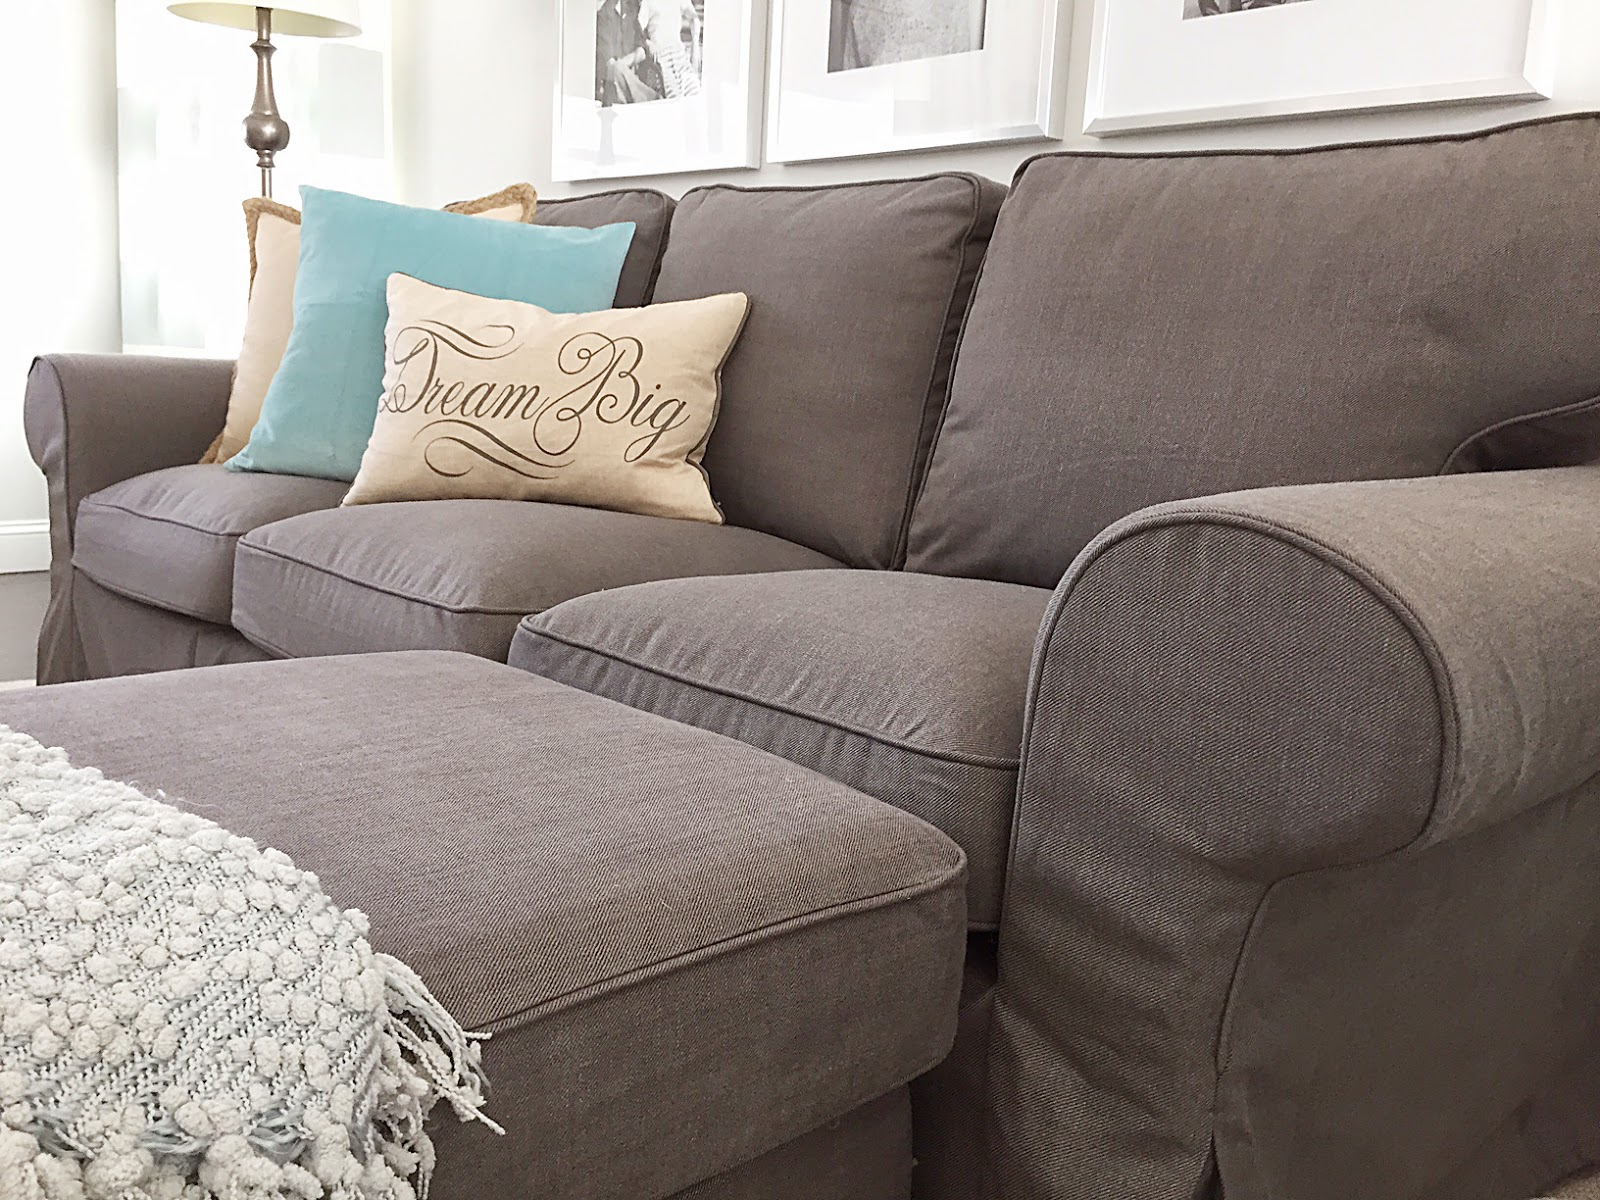 Crafty teacher lady review of the ikea ektorp sofa series for Ikea gray sofa